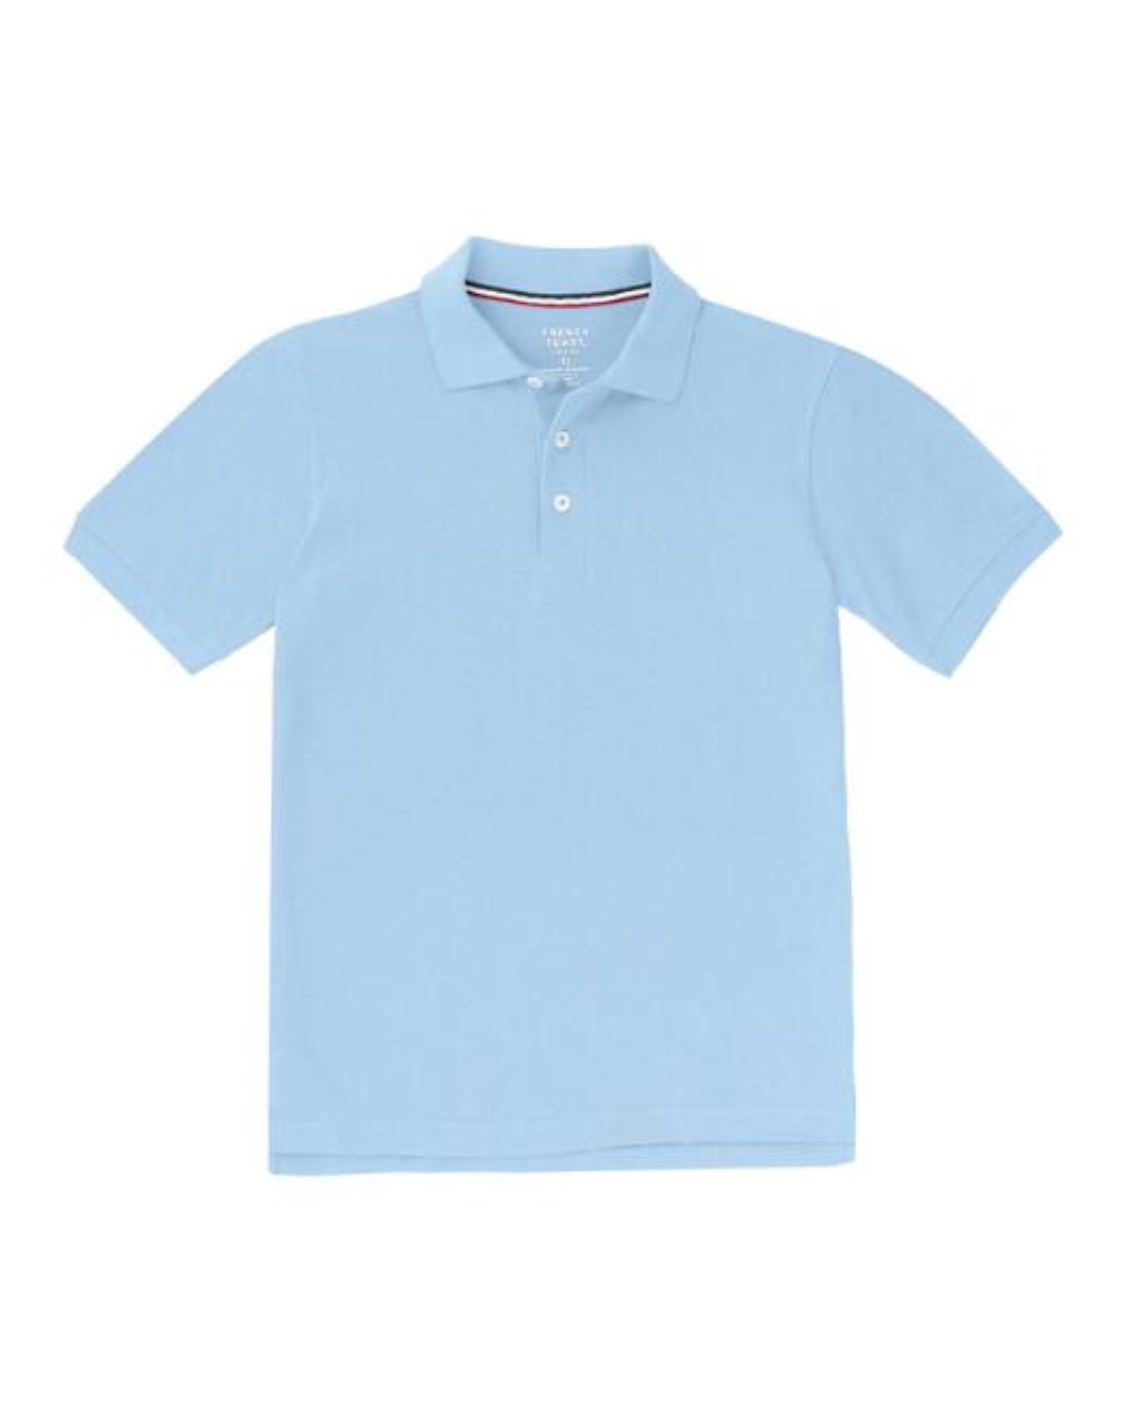 Boys CottonPoly Jersey Knit Polo Short Sleeve BLUE/WHITE with School Monogram ( for all grades boys and girls)